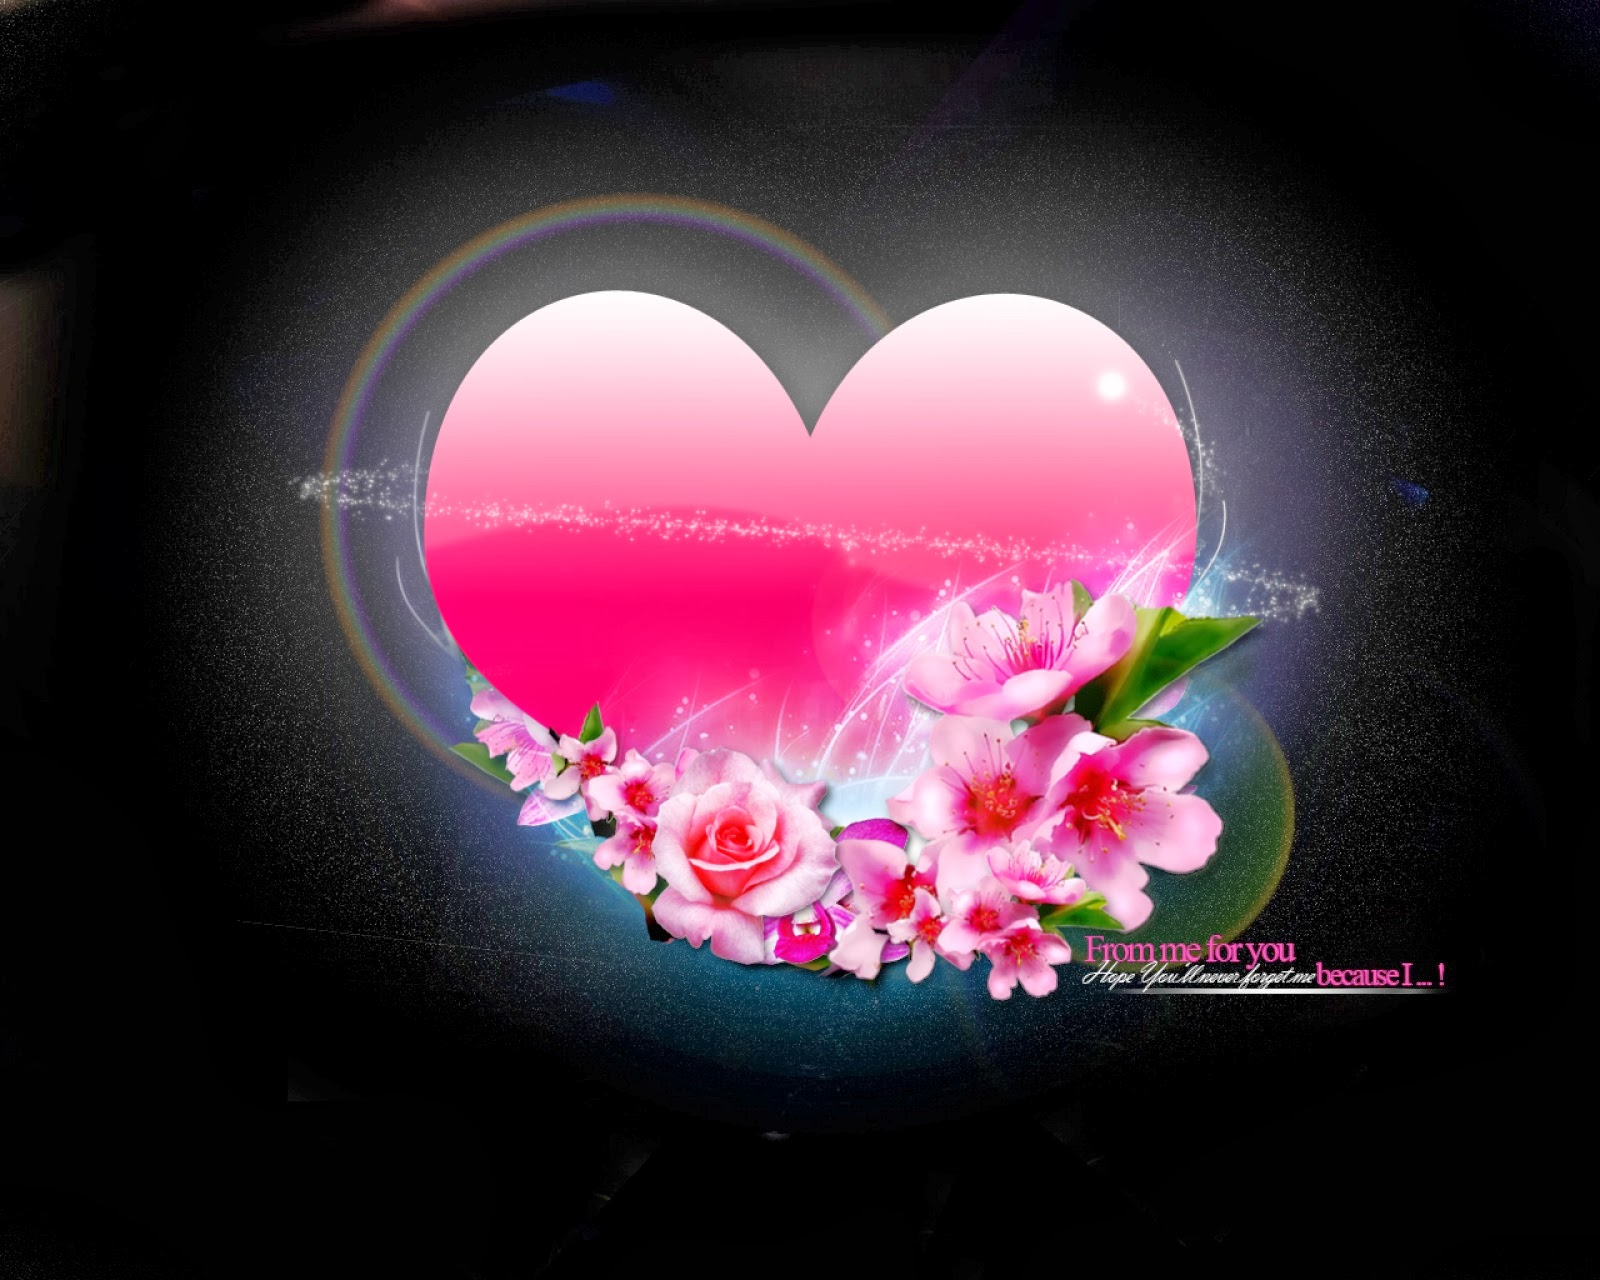 Best-Beautiful-valentine-day-pictures-hearts-image-HD-free-download.jpg